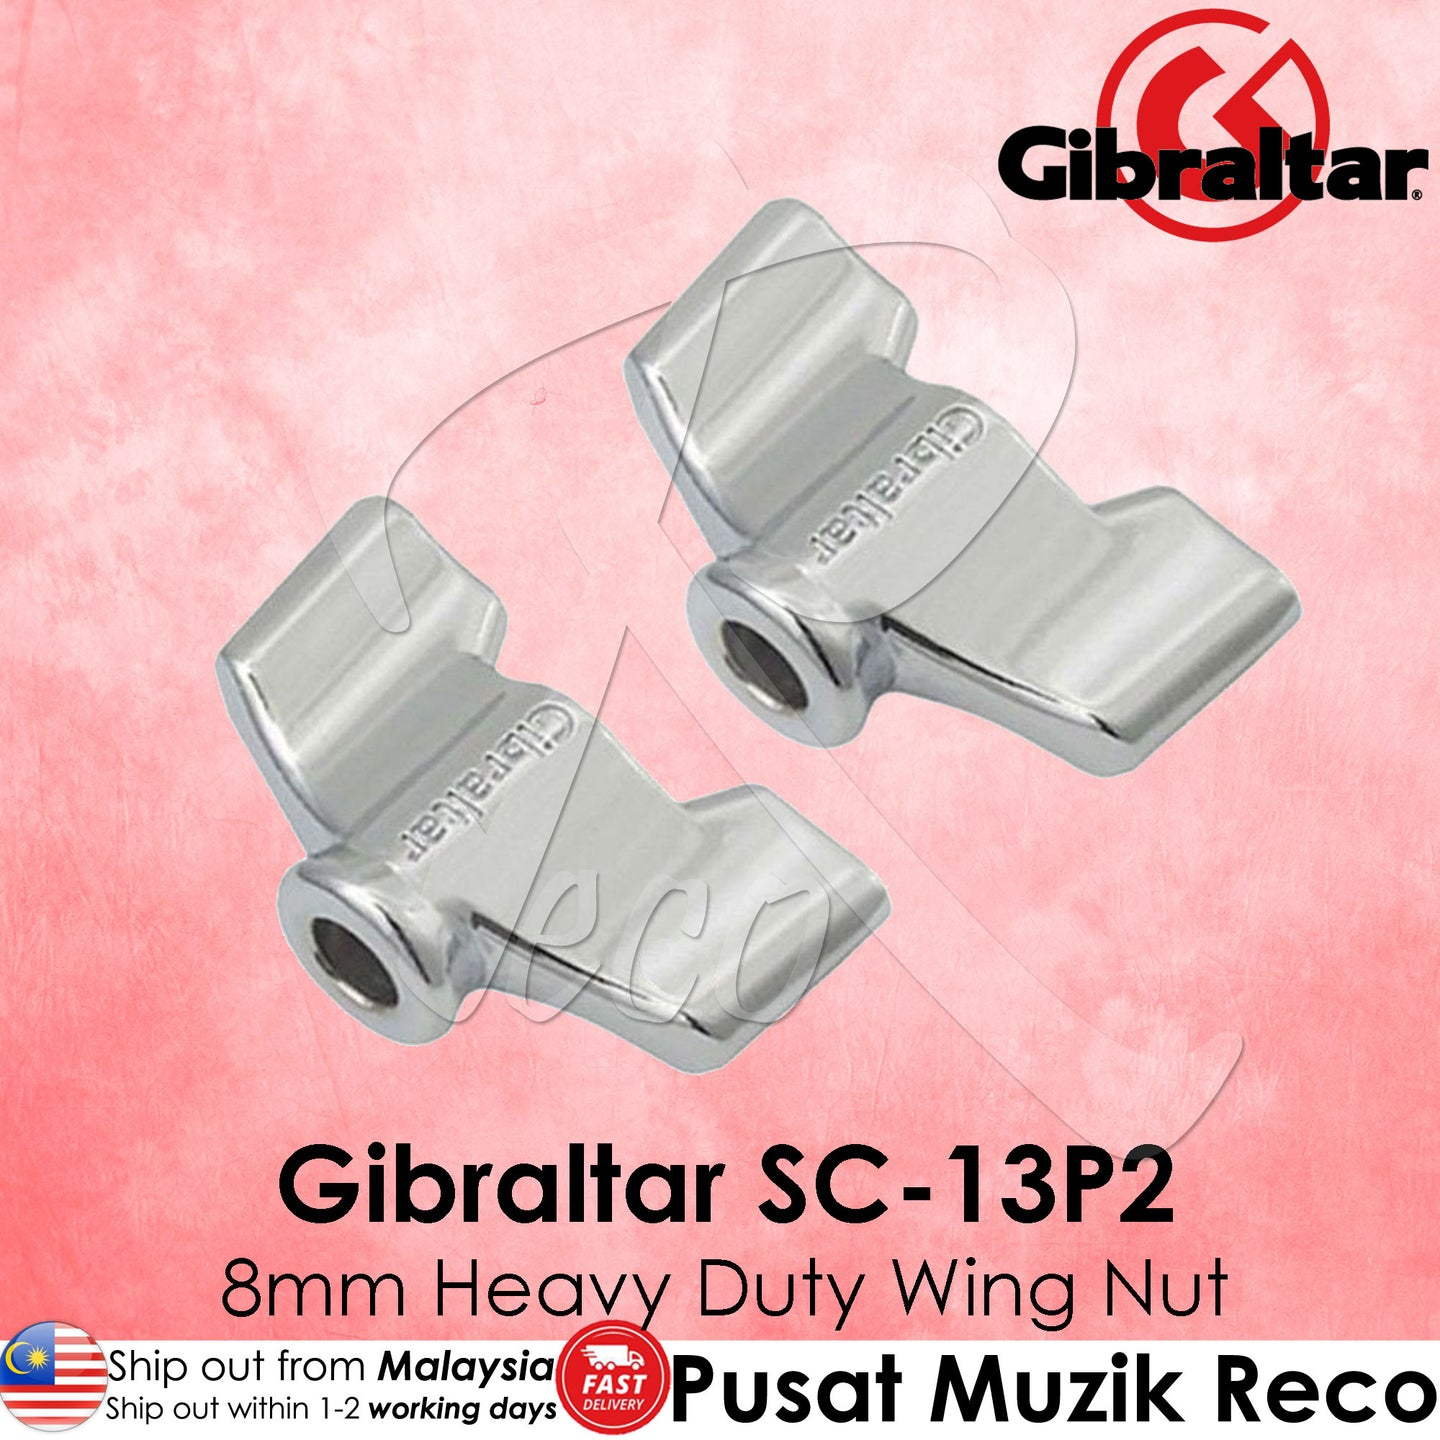 Gibraltar SC-13P2 8mm Heavy-Duty Wing Nut (2/Pack) | Reco Music Malaysia